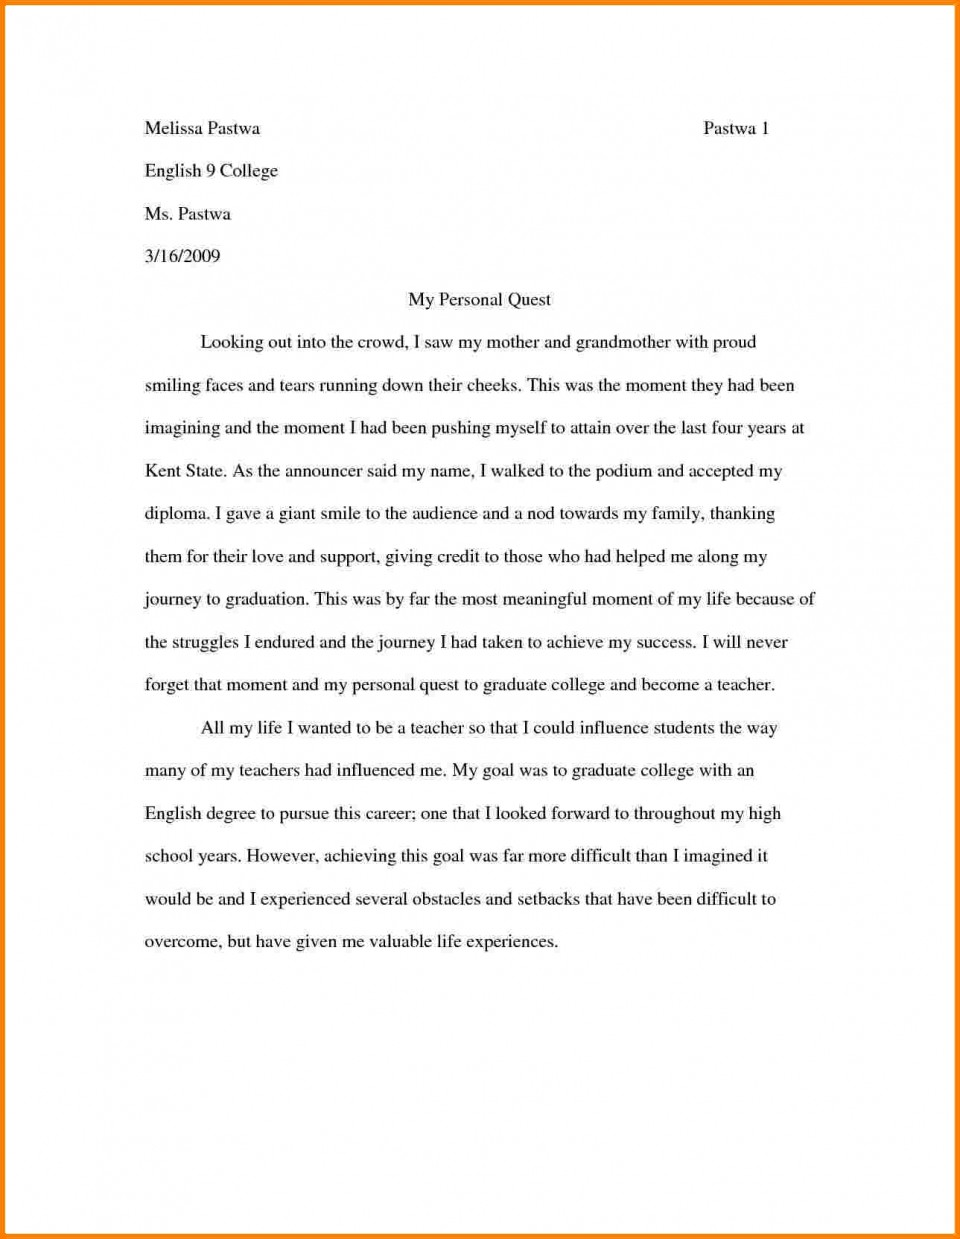 020 3341381556 How To Write Proposal20nt Essay Topics Buy Researchs Cheap Examples20 Good For Awesome Research Papers Argumentative In College Interesting Paper The Philippines 960